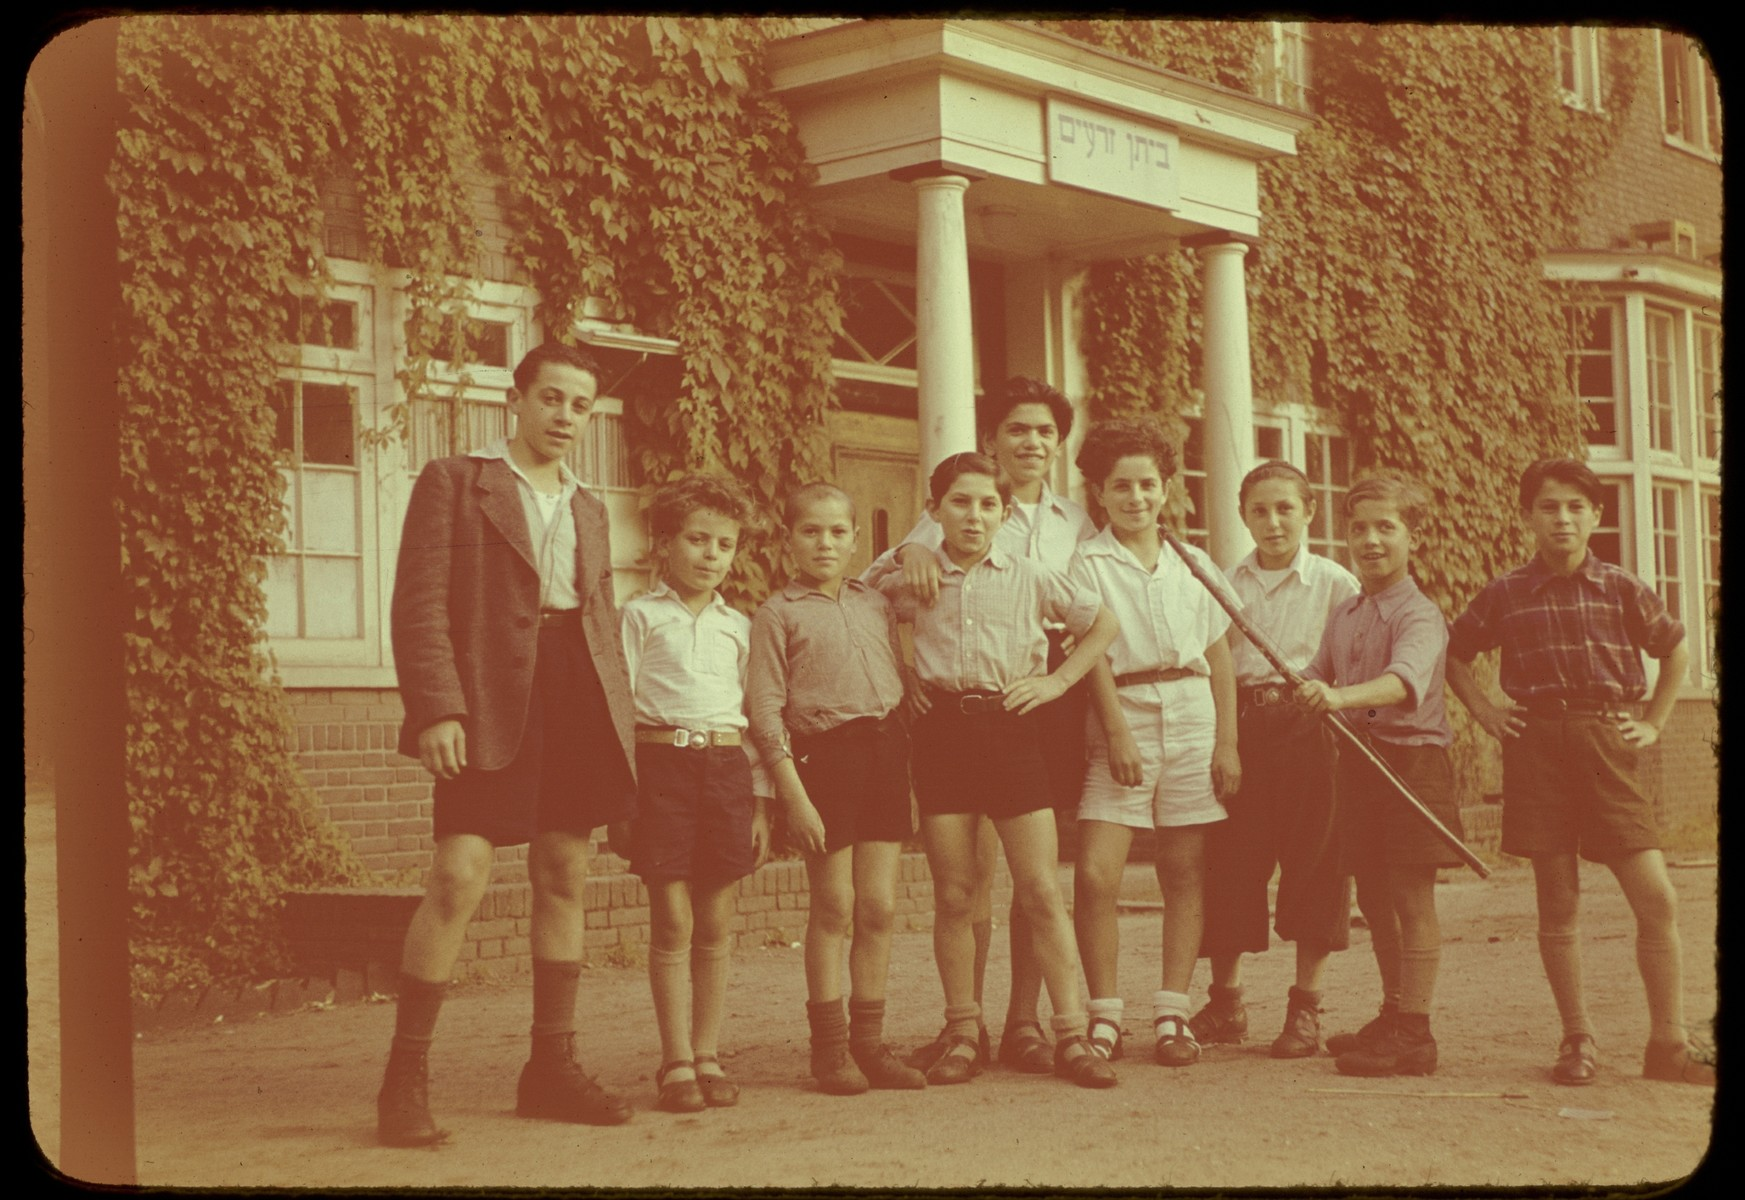 Group portrait of Jewish DP children standing outside the Ilaniah children's home in Apeldoorn. One child is holding a wooden bow, an arrow at his feet.